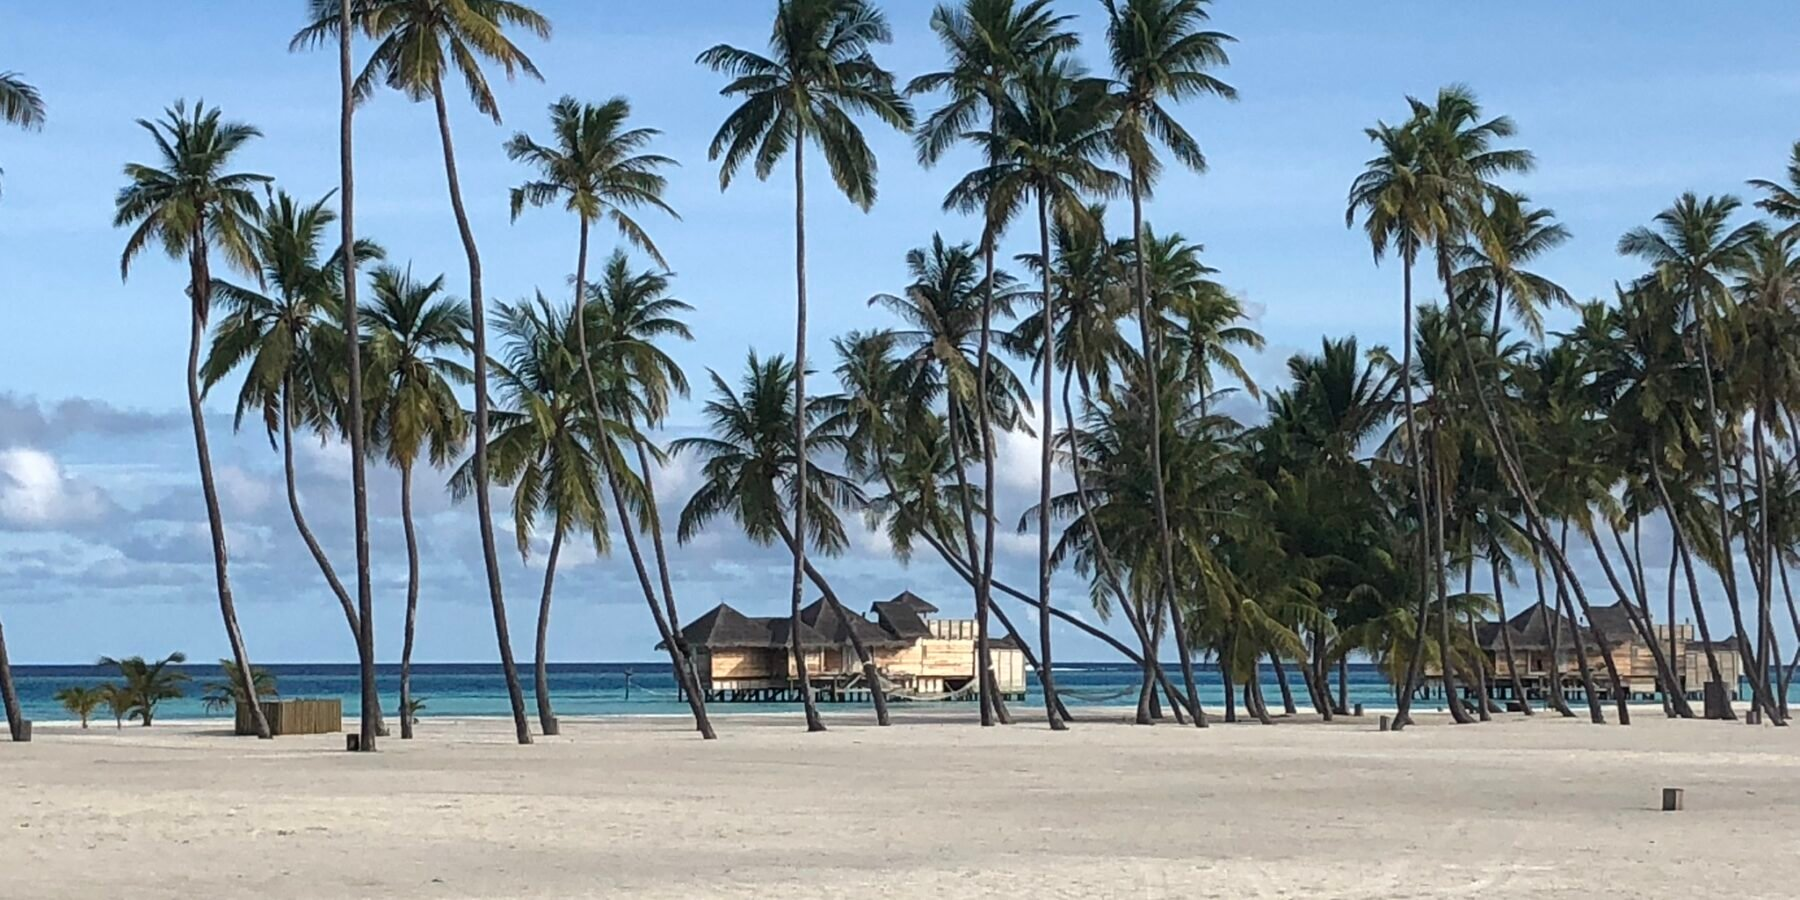 Picture postcard tropical beach at Gili Lankanfushi in the Maldives